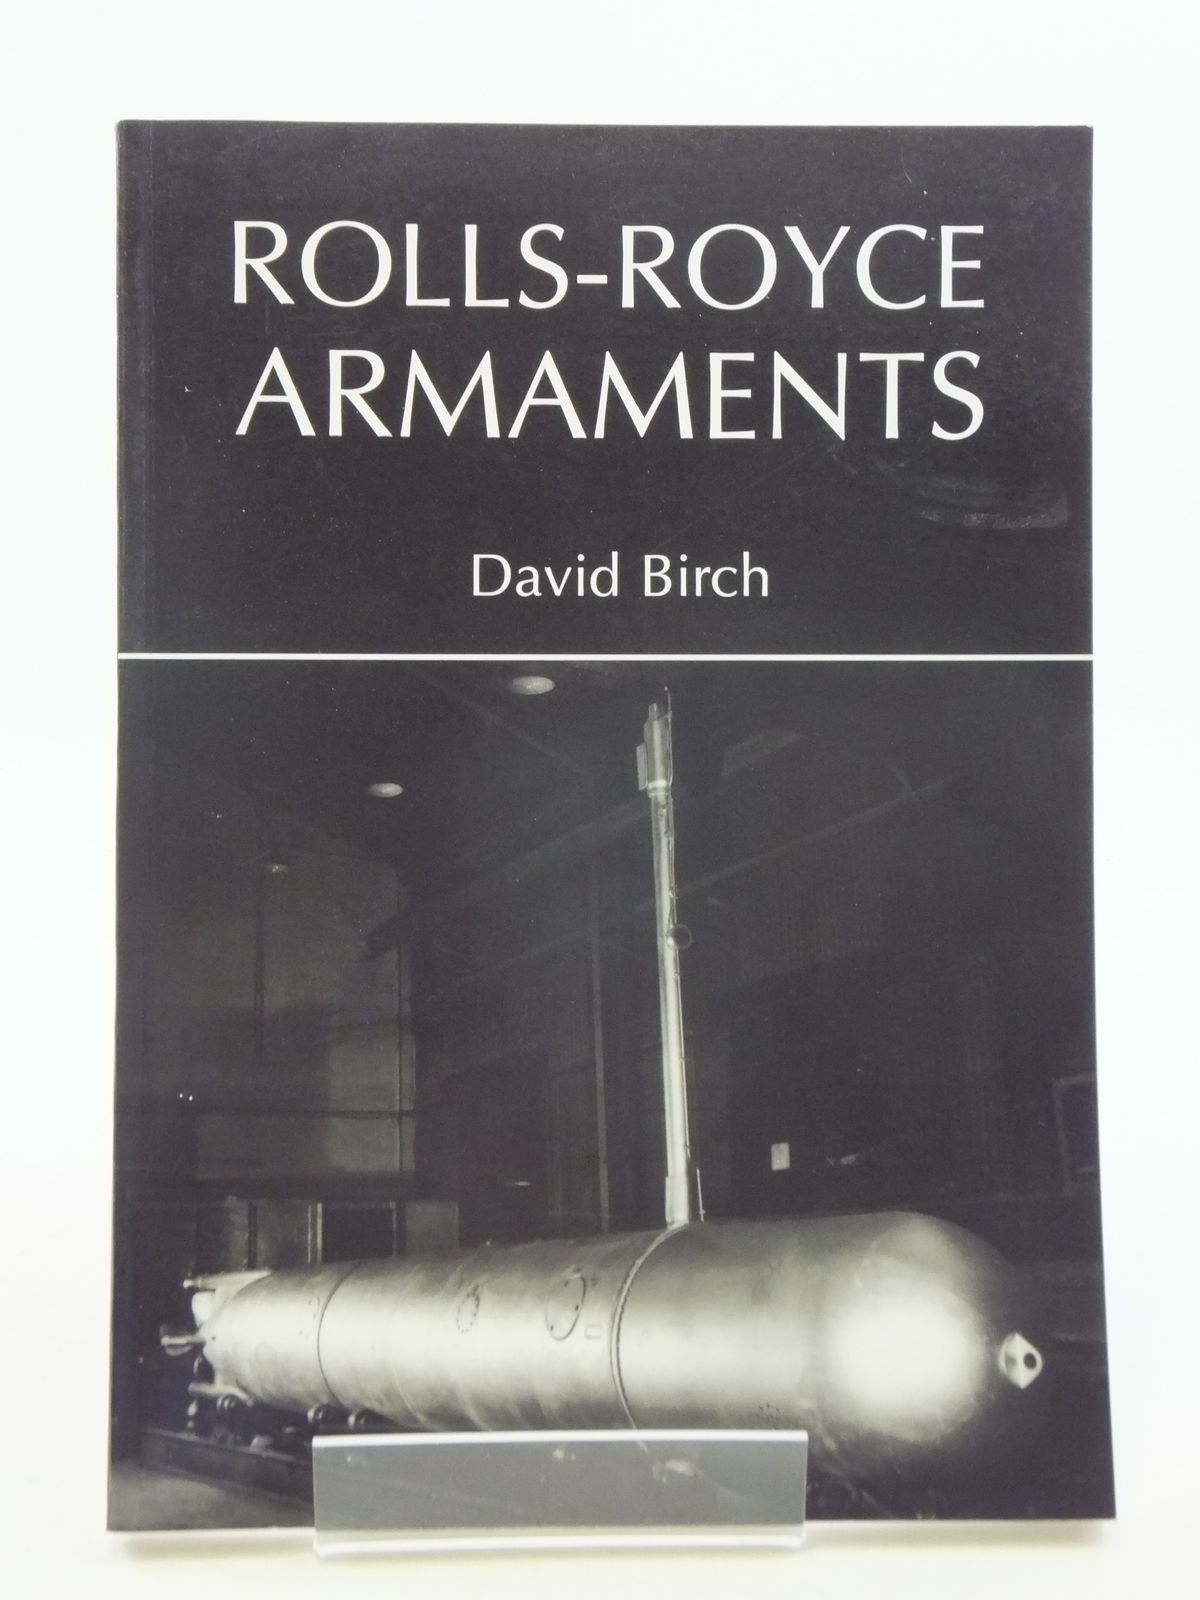 Photo of ROLLS-ROYCE ARMAMENTS written by Birch, David published by Rolls-Royce Heritage Trust (STOCK CODE: 1605630)  for sale by Stella & Rose's Books